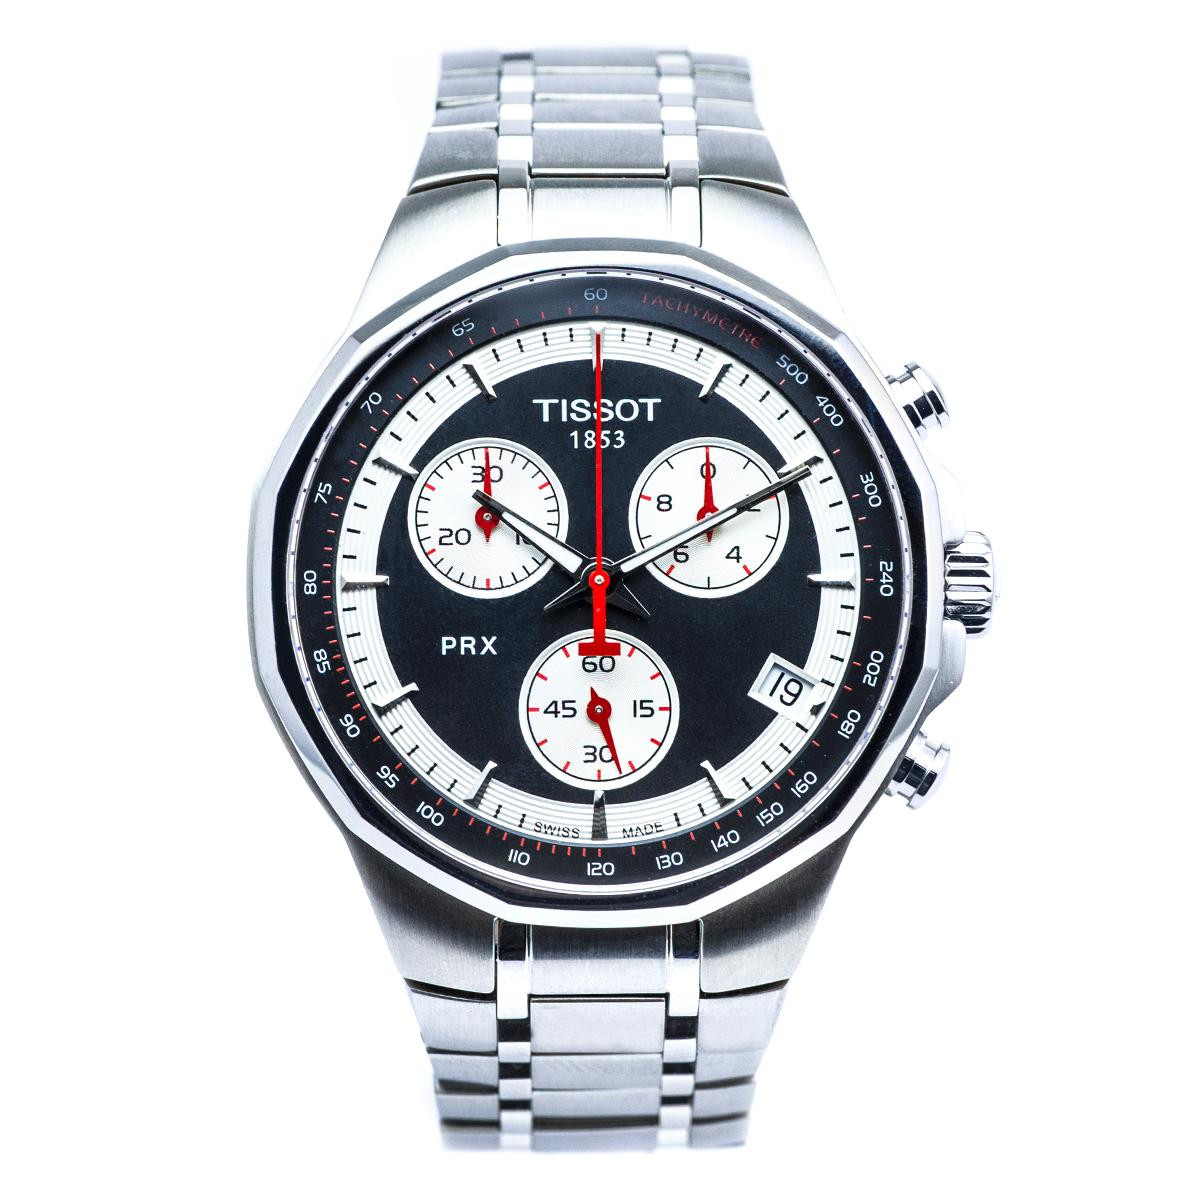 New Tissot PRX Watch